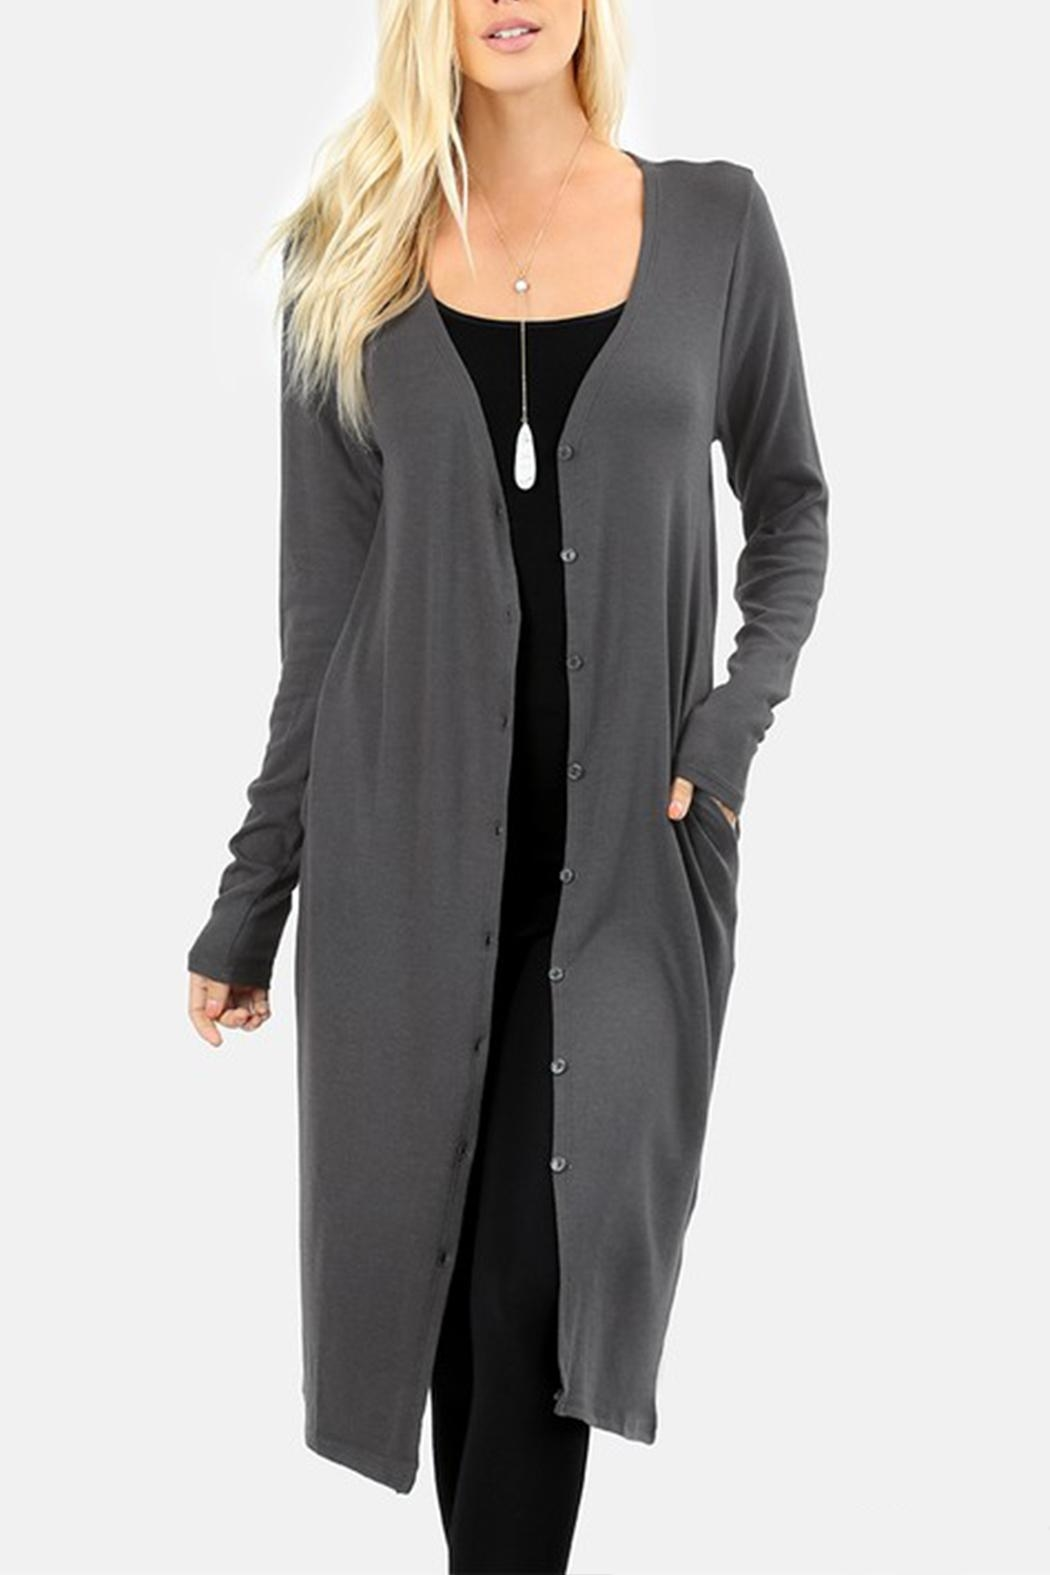 Zenana Outfitters Button-Front Long Cardigan - Main Image